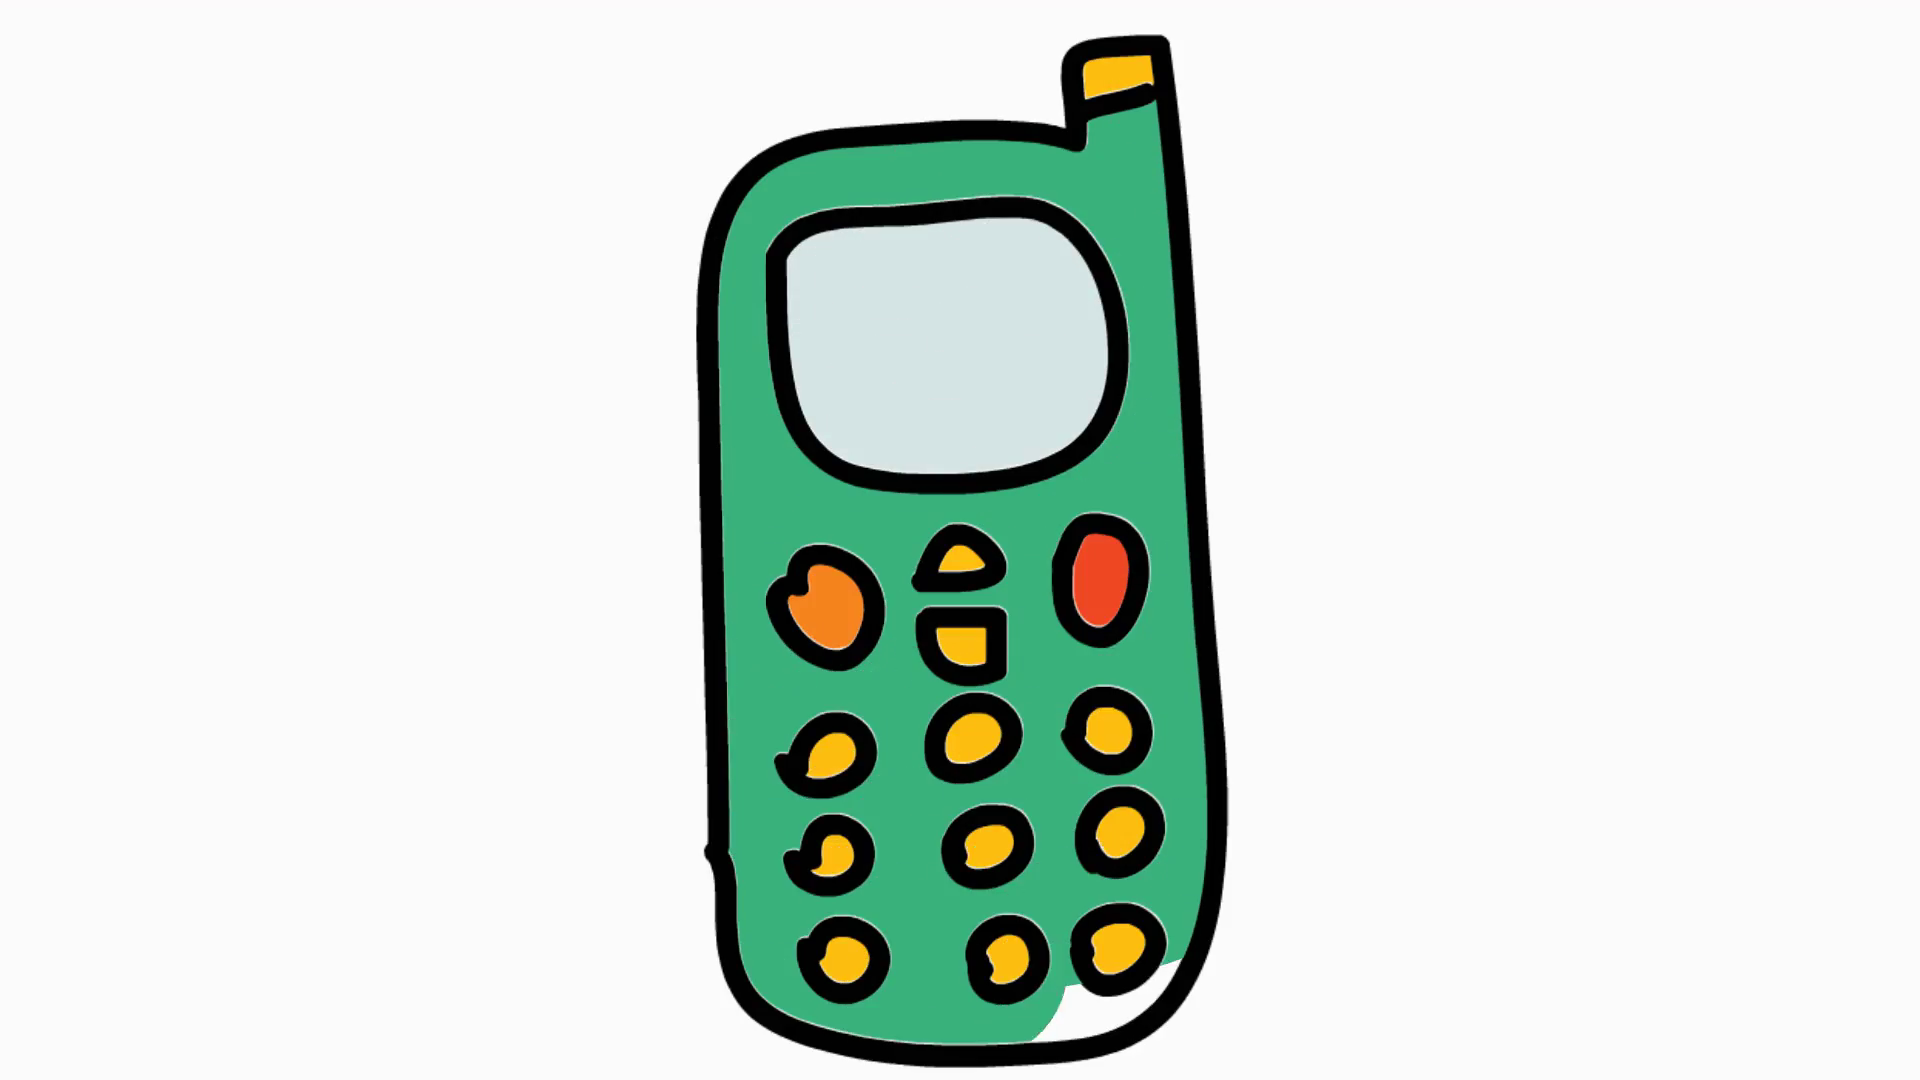 Cartoon Pictures Of Cell Phones Free D 919205 Png Images Pngio